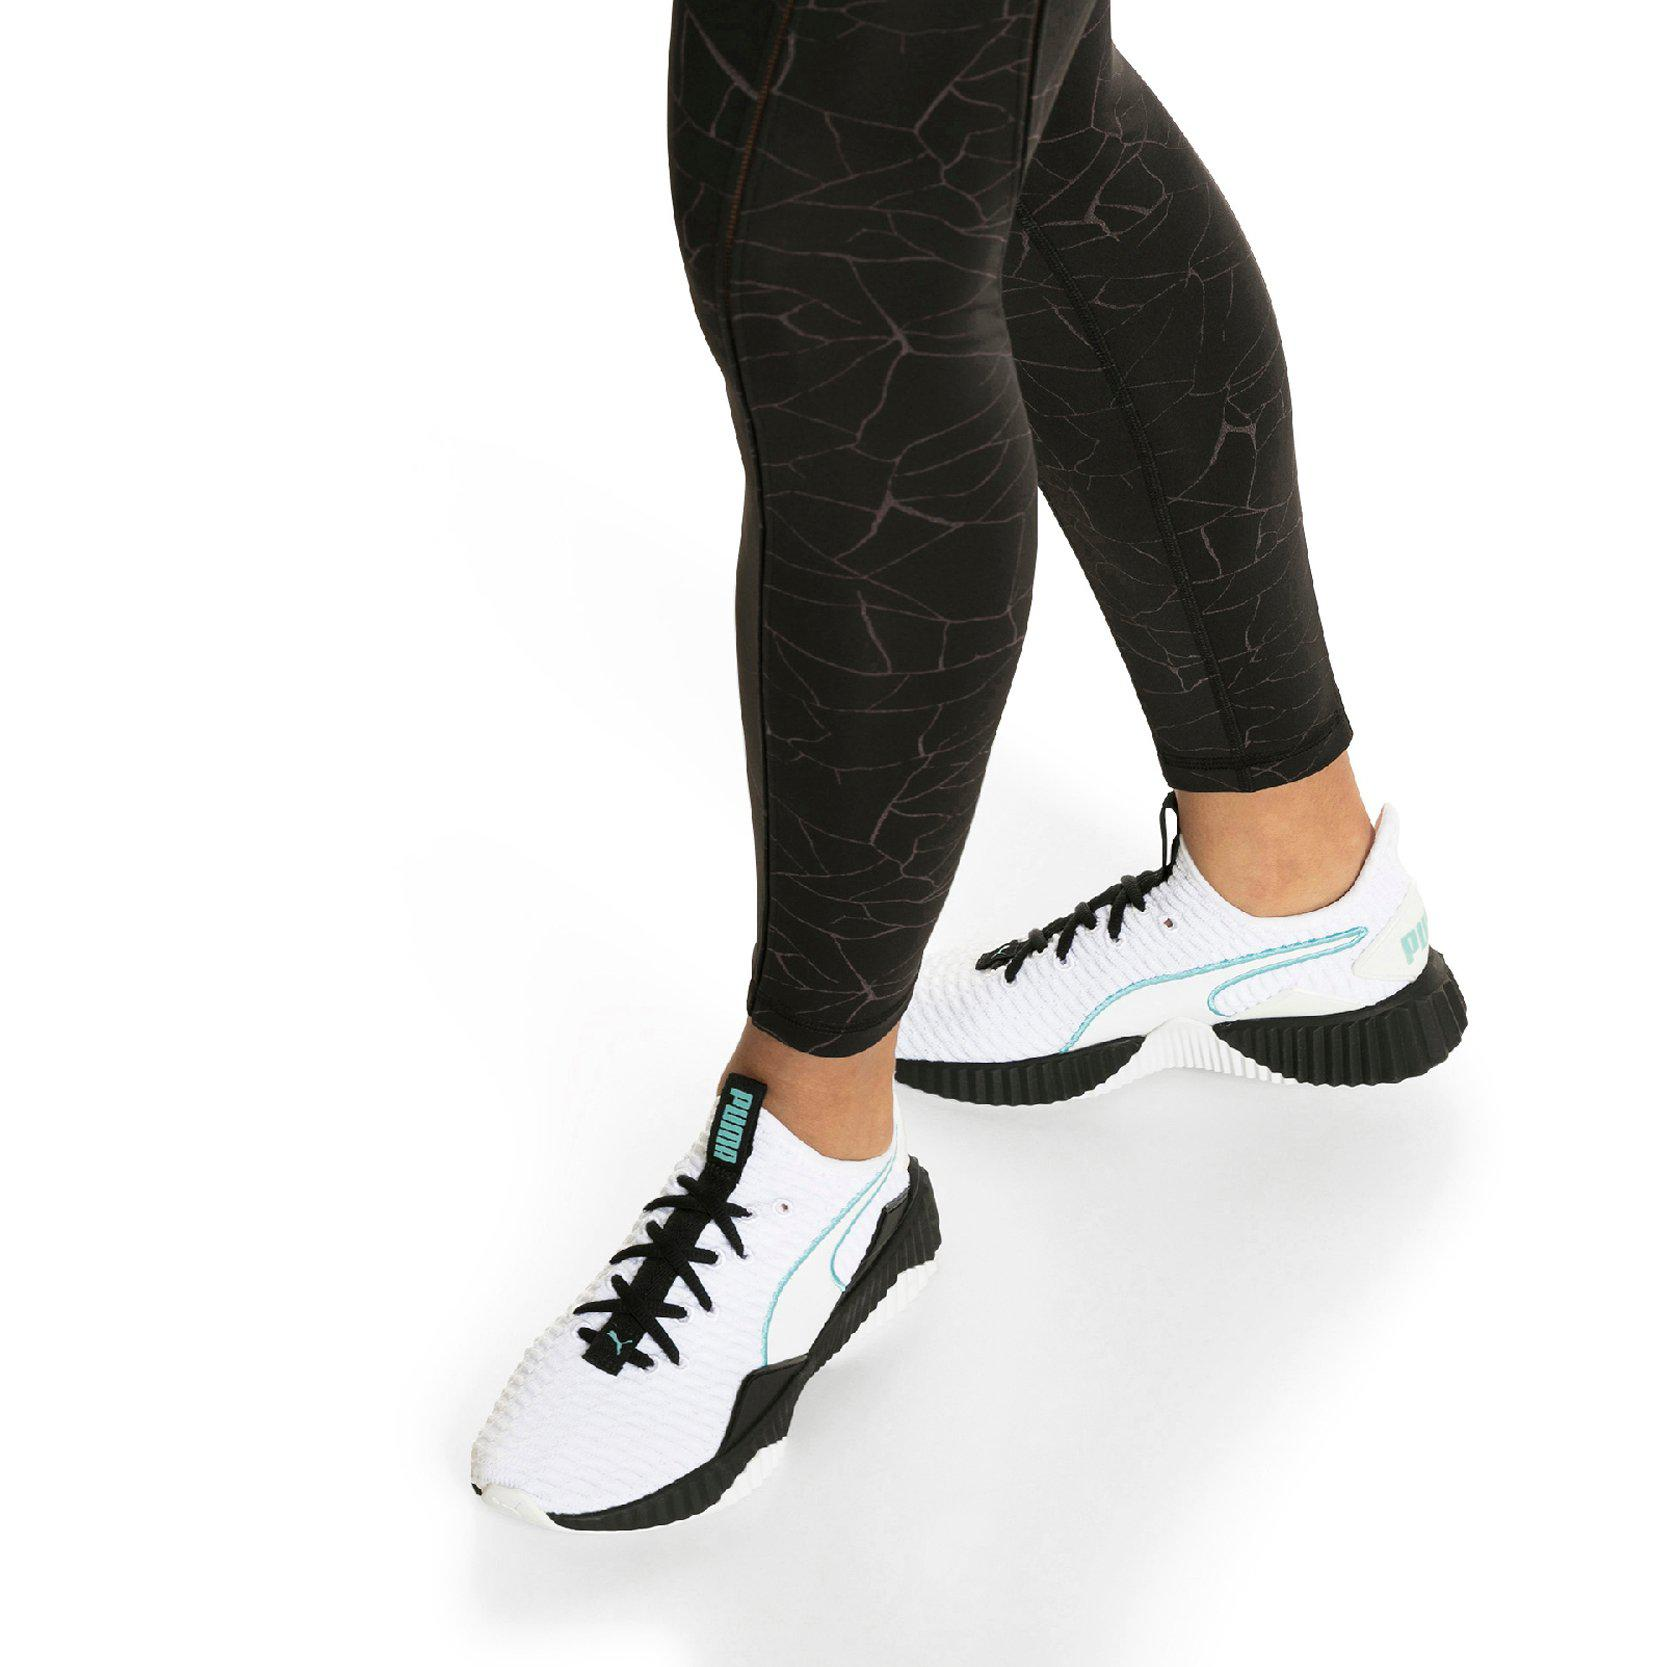 c35c4f300c3 Lyst - PUMA White black Women s Defy Sneakers in White